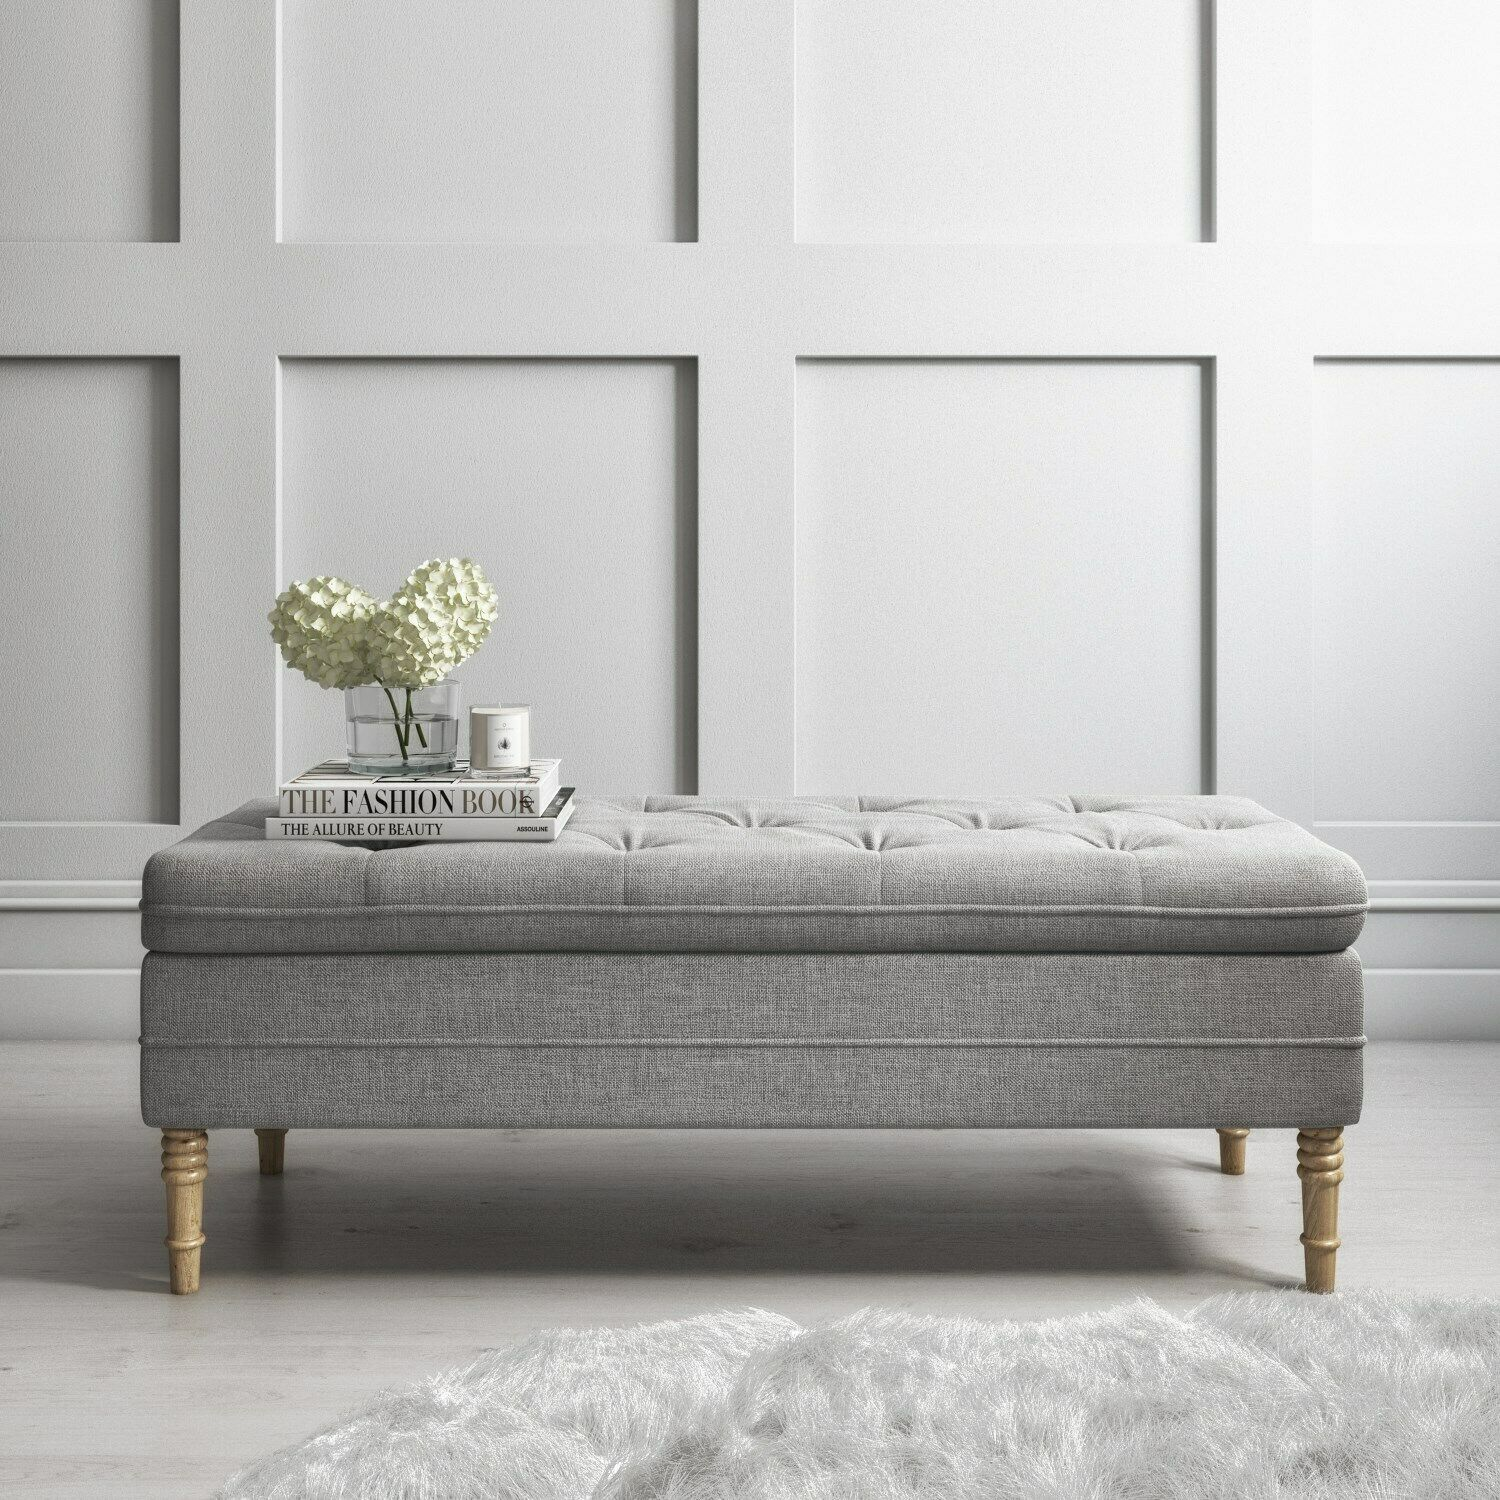 Safina Ottoman Storage Bench in Woven Light Grey Fabric SAF067